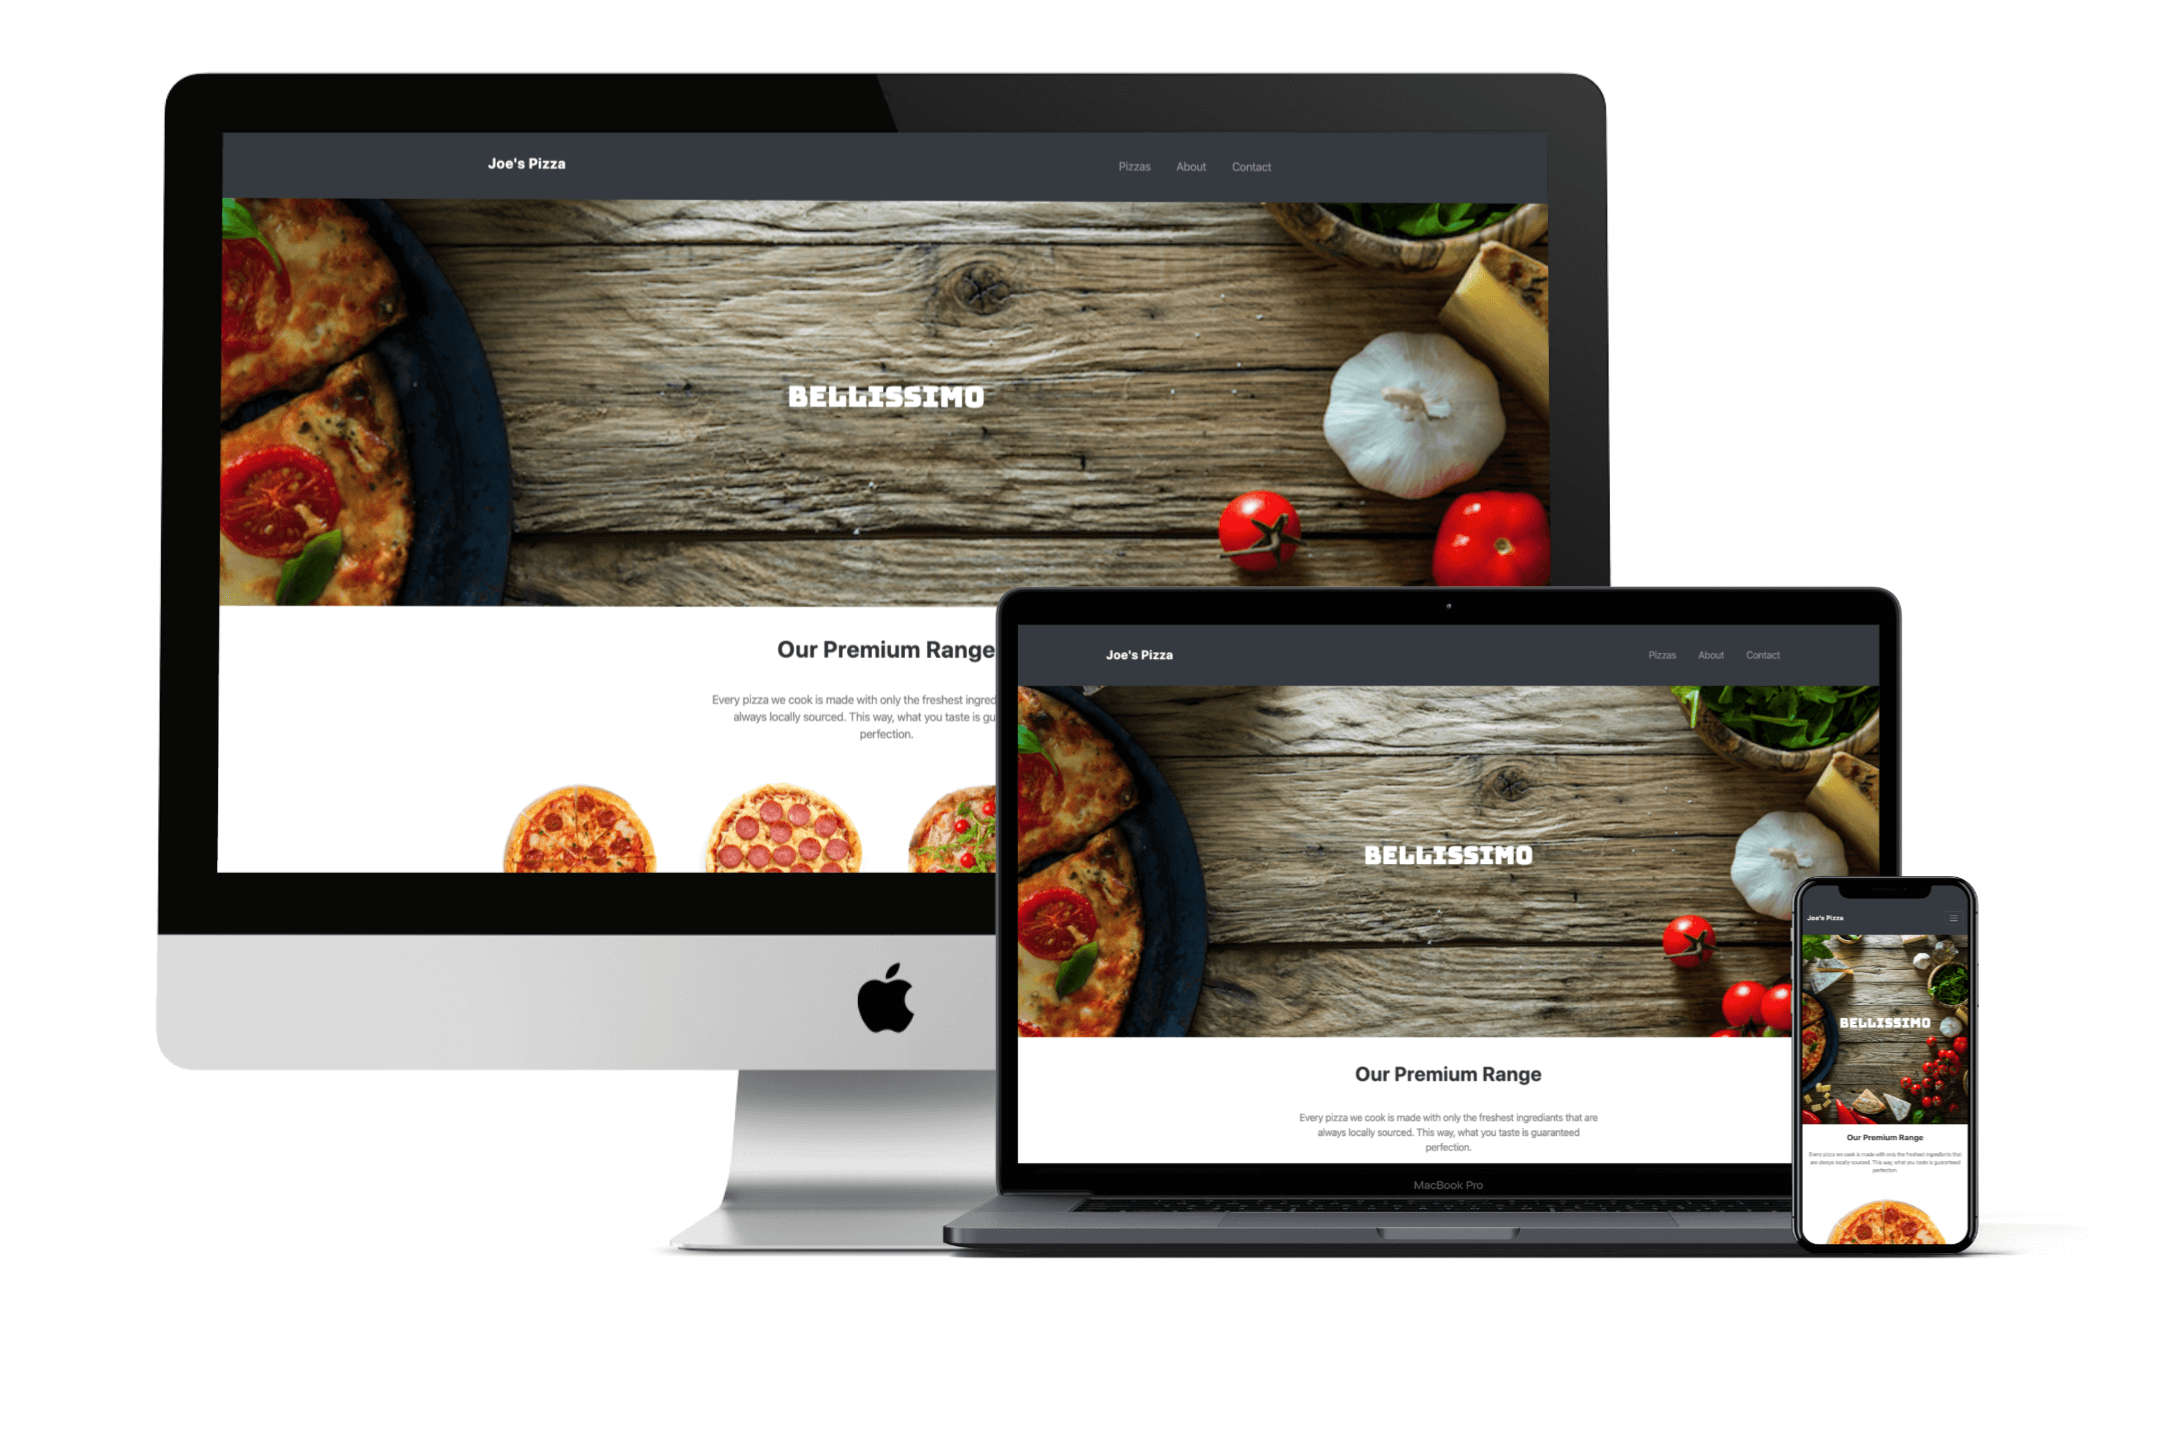 Joe's Pizza Website Design